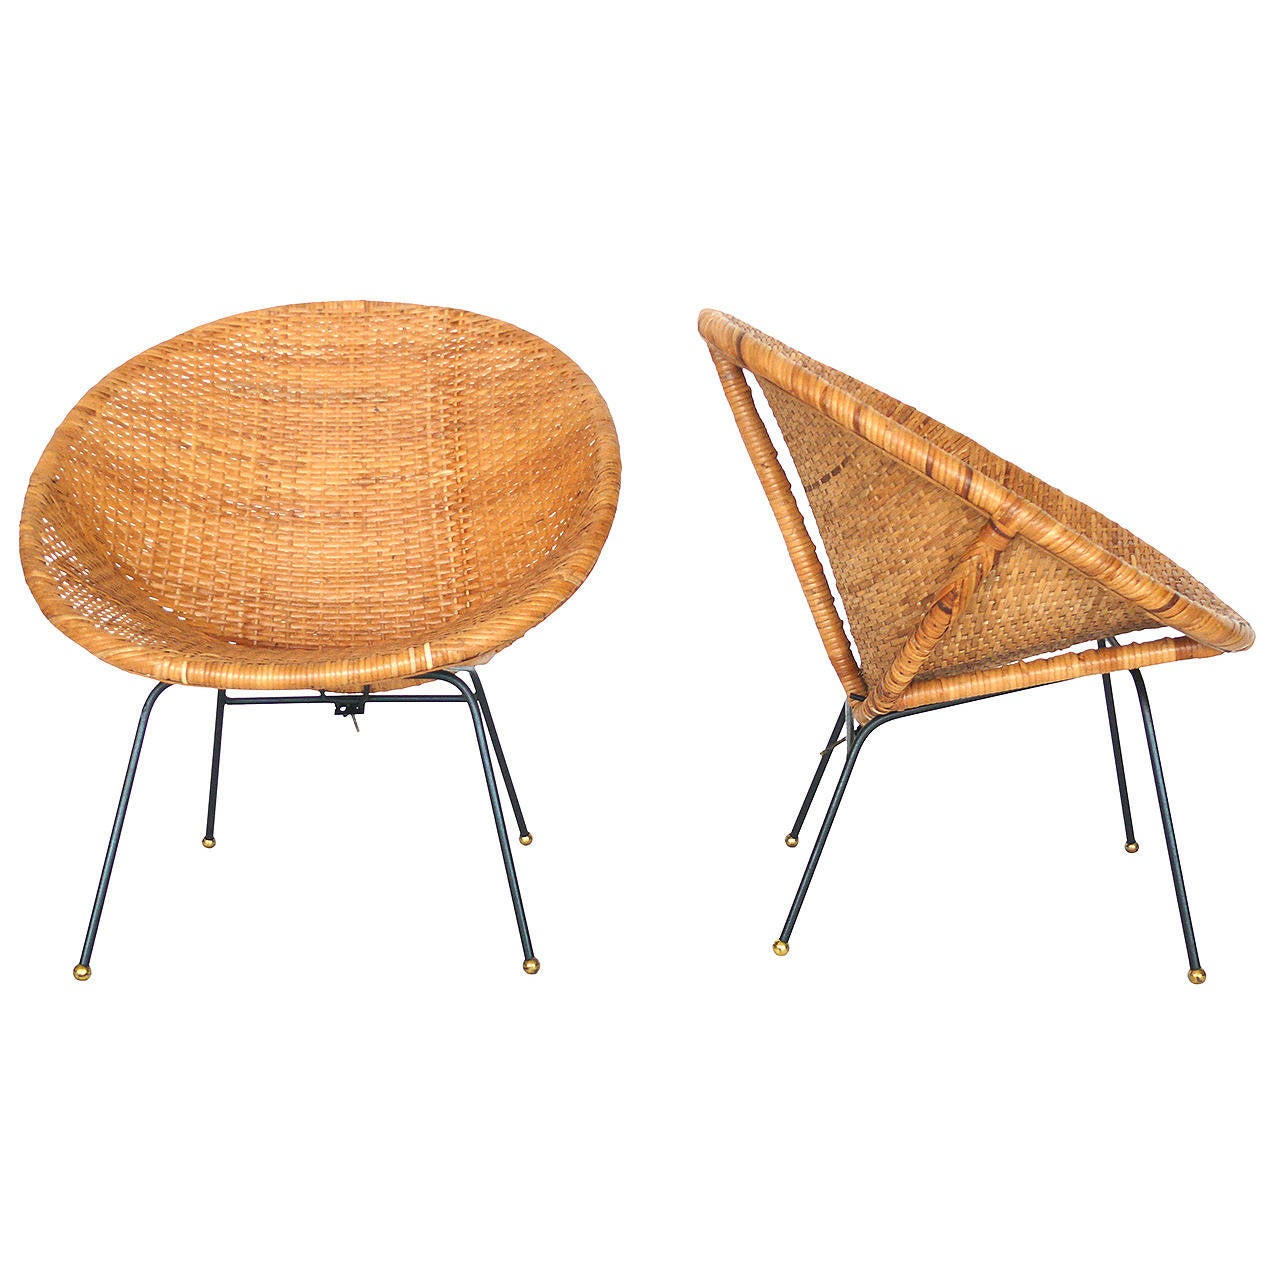 Woven Wicker And Iron Bucket Chairs At 1stdibs